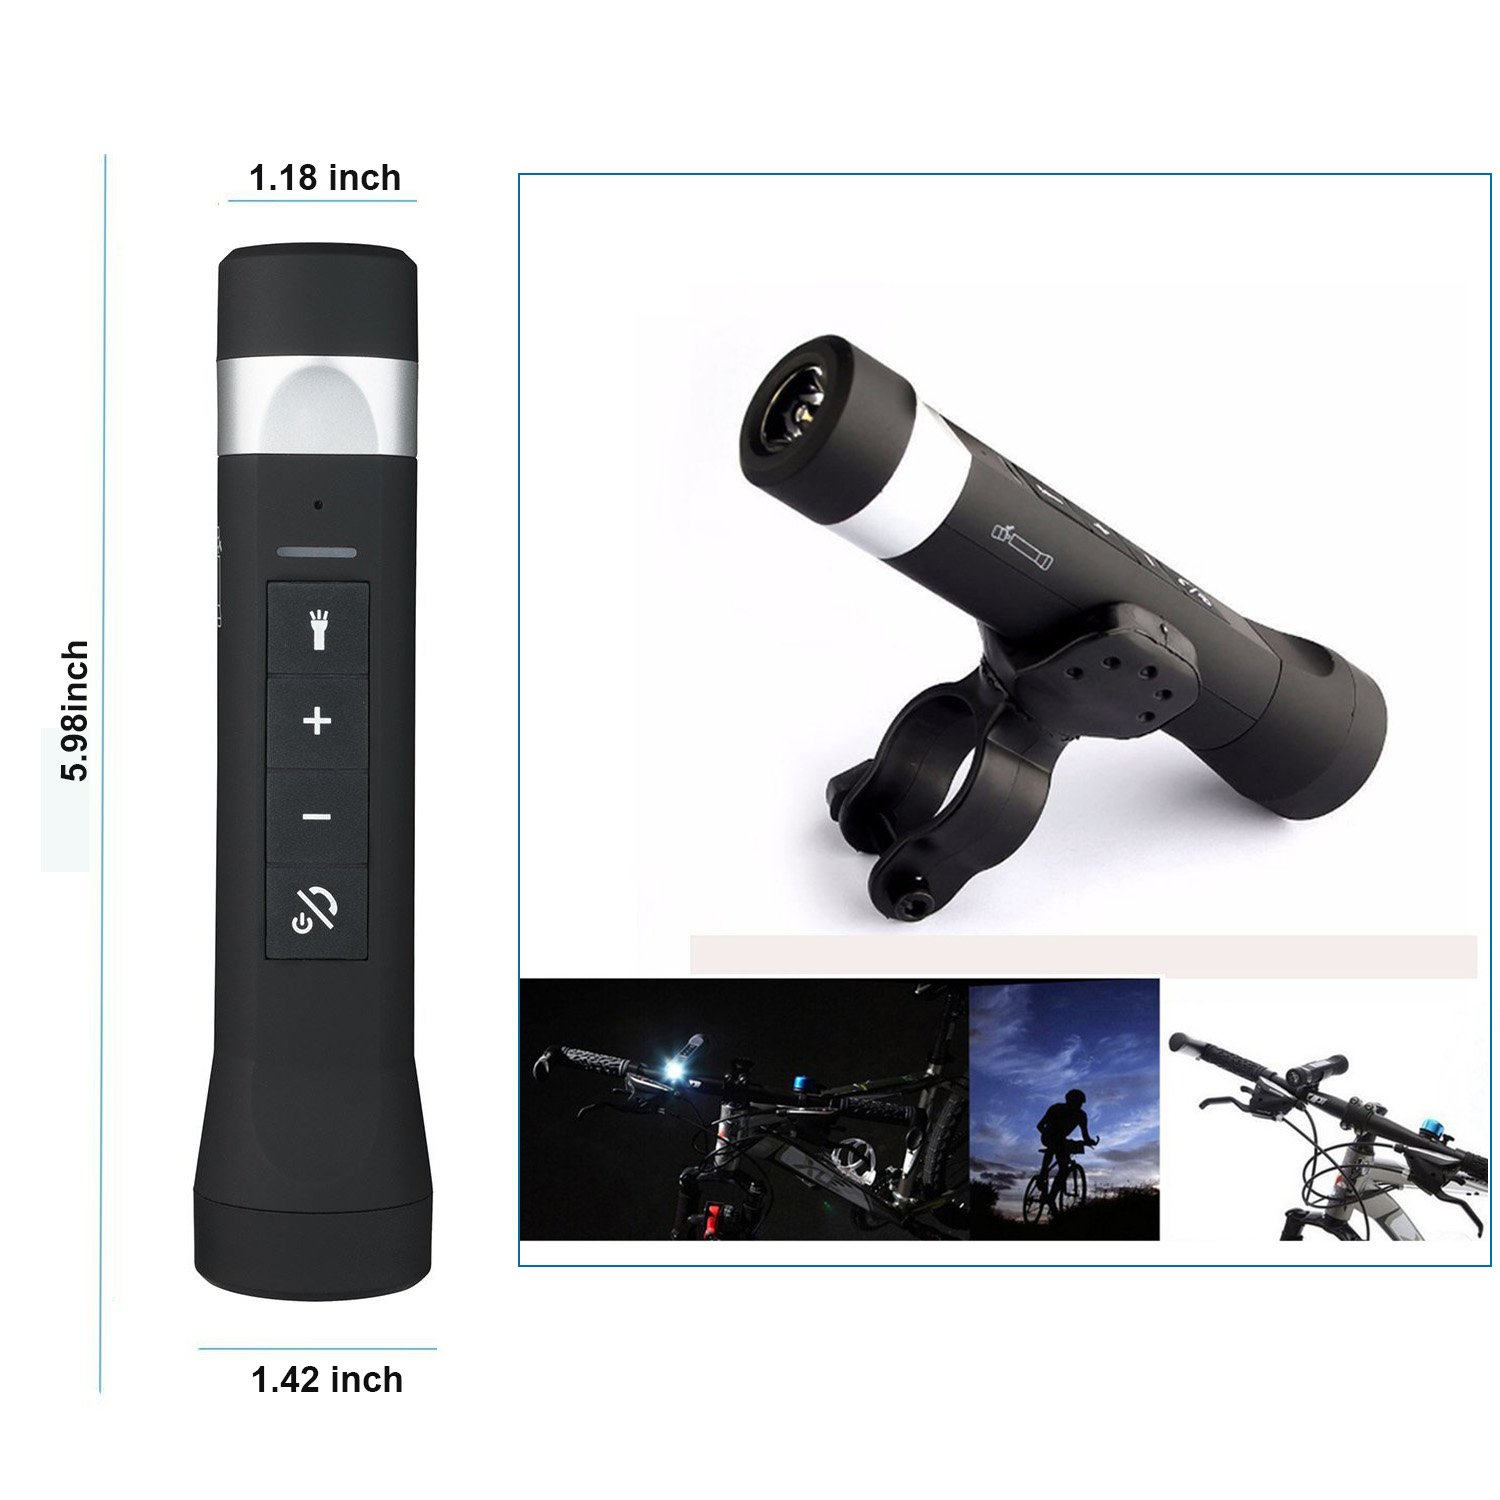 JMKMGL 4-in-1 LED Flashlight, Stereo Bluetooth Bicycle Speaker with 2600mah Power Bank Function,Bike Holder include,Multifunctional Nightlight for Home Cycling Sport